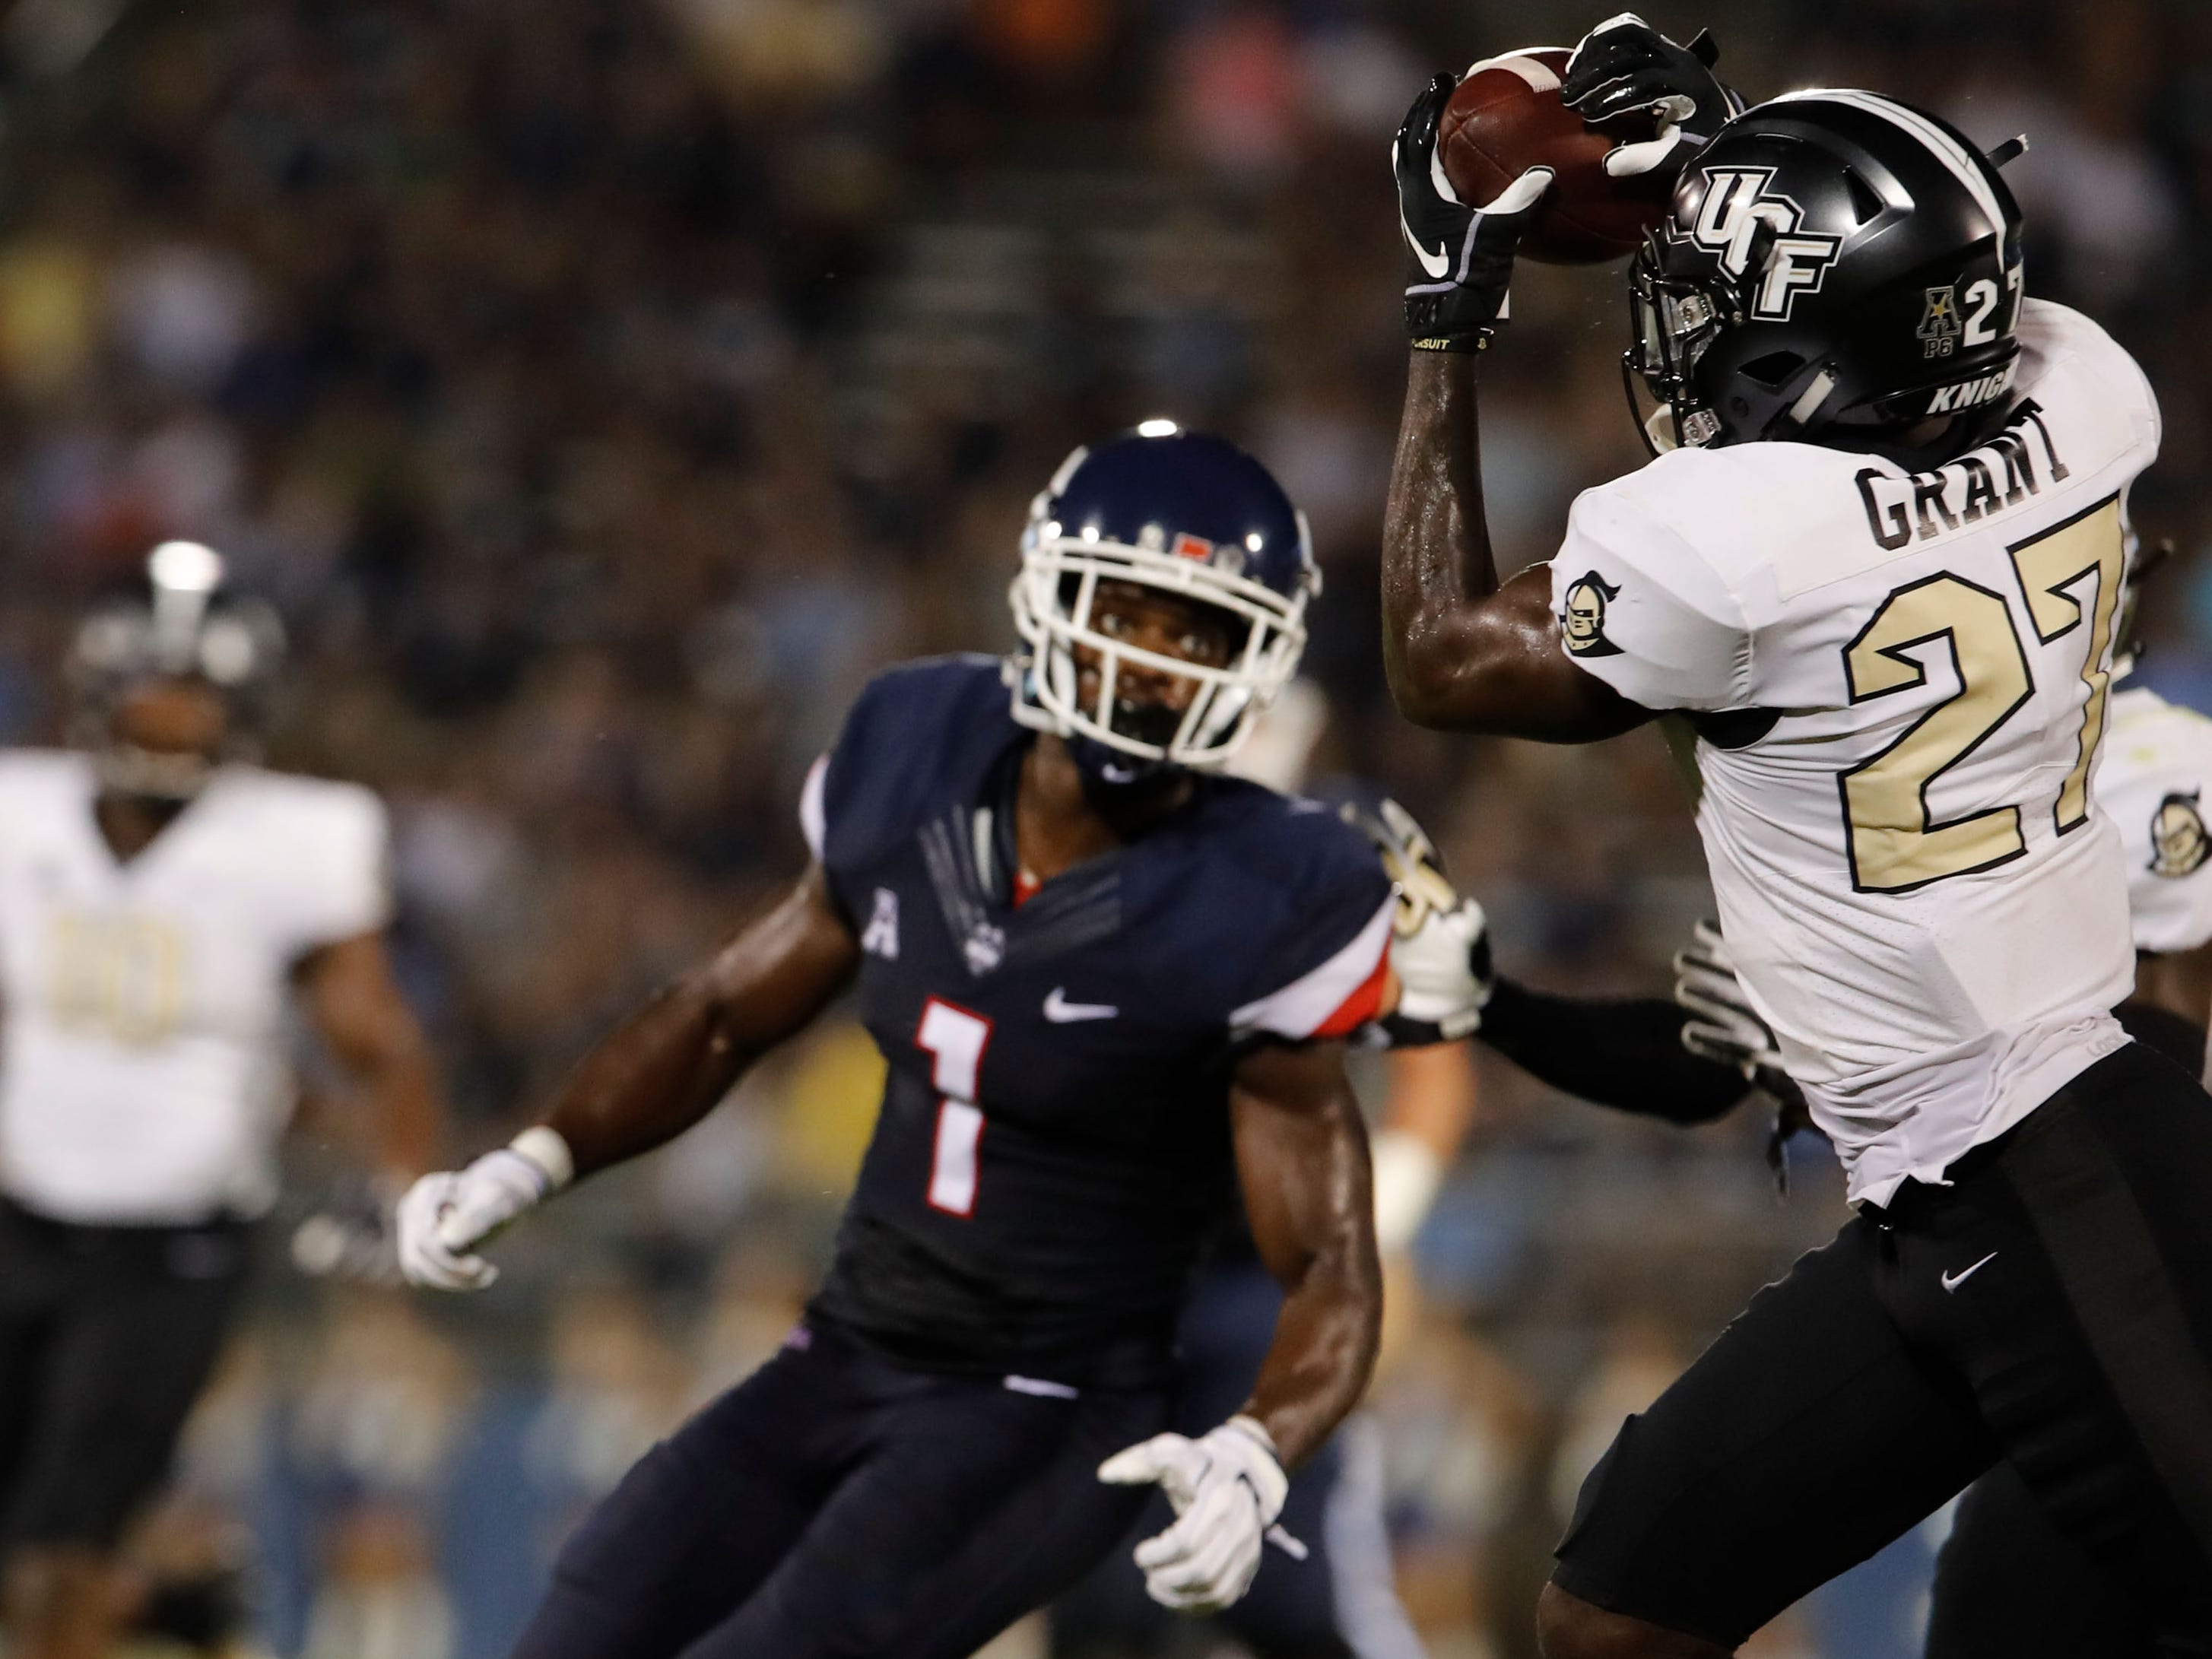 UCF defensive back Richie Grant intercepts a pass intended for Connecticut wide receiver Hergy Mayala (1) in the second quarter at Pratt & Whitney Stadium at Rentschler Field.